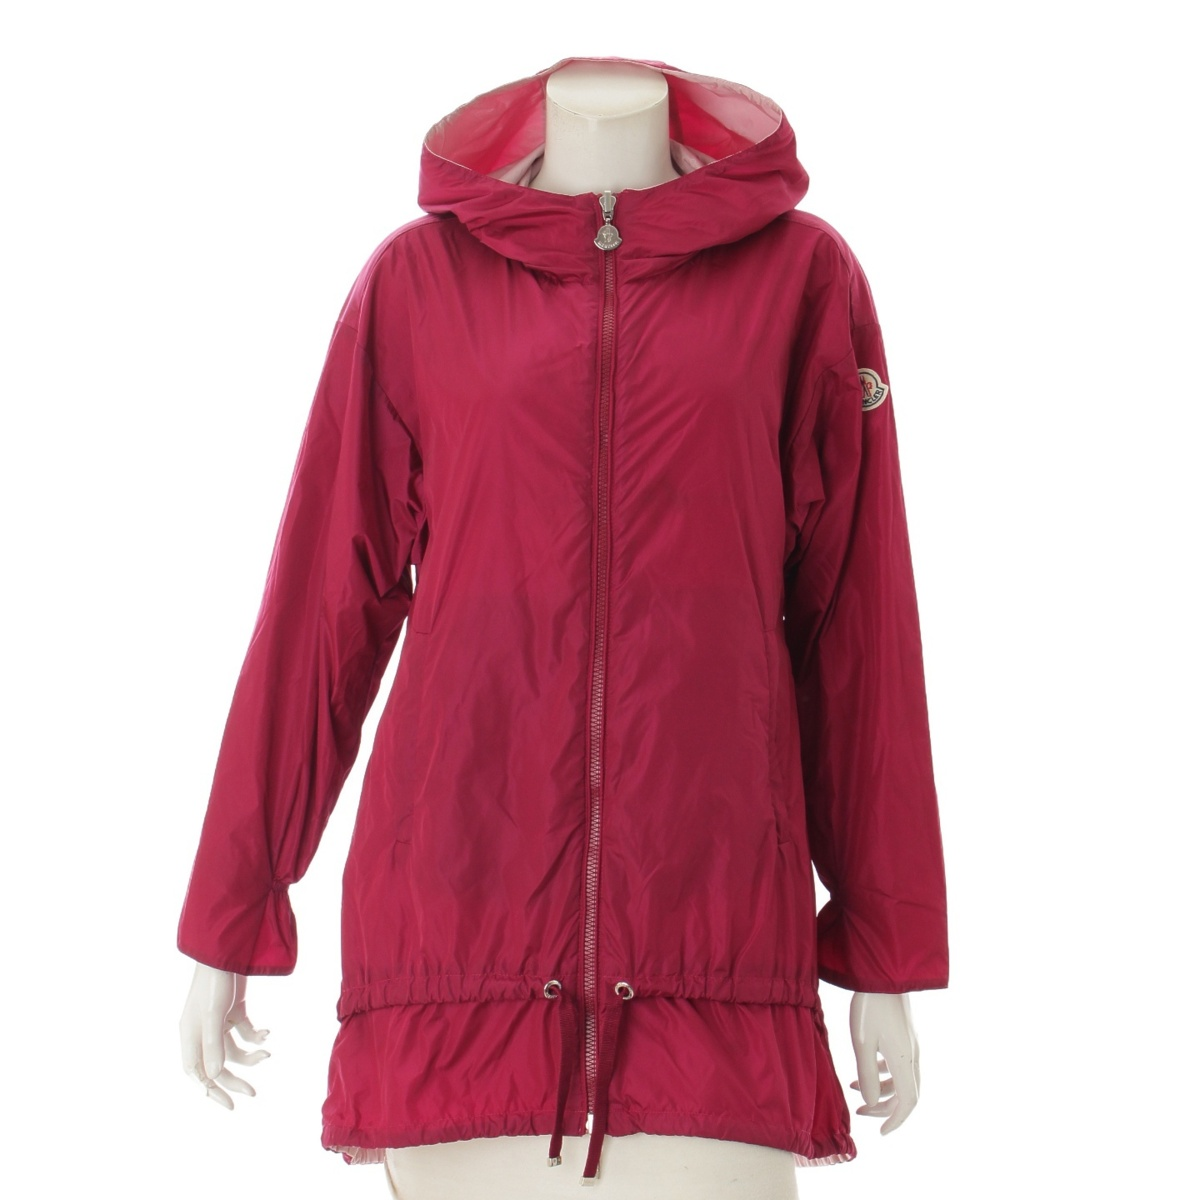 【30%OFFセール】【モンクレール】Moncler GROUCHY ナイロン リバーシブル コート ピンク 0 【中古】【鑑定済・正規品保証】69990